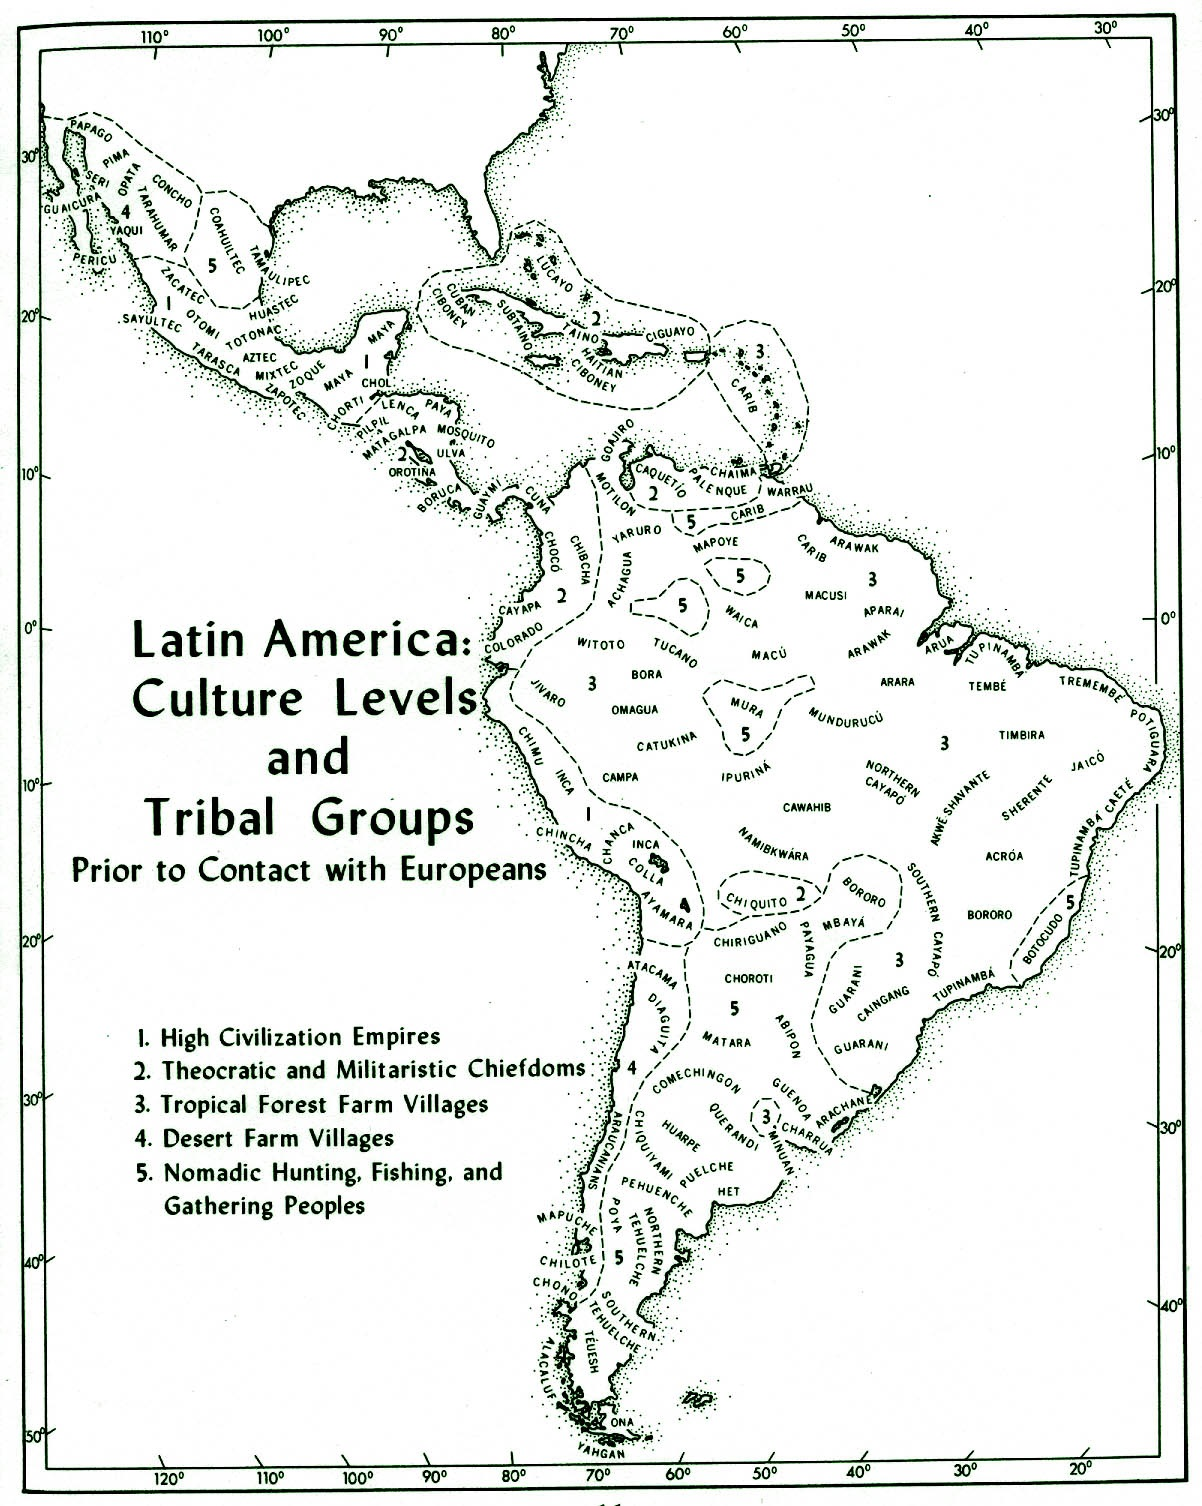 atlantic world map, korea map, caucasian race map, choctaw map, honduras map, united states map, el salvador map, first nations map, bolivia map, aryan race map, england map, on indigenous peoples of the americas map